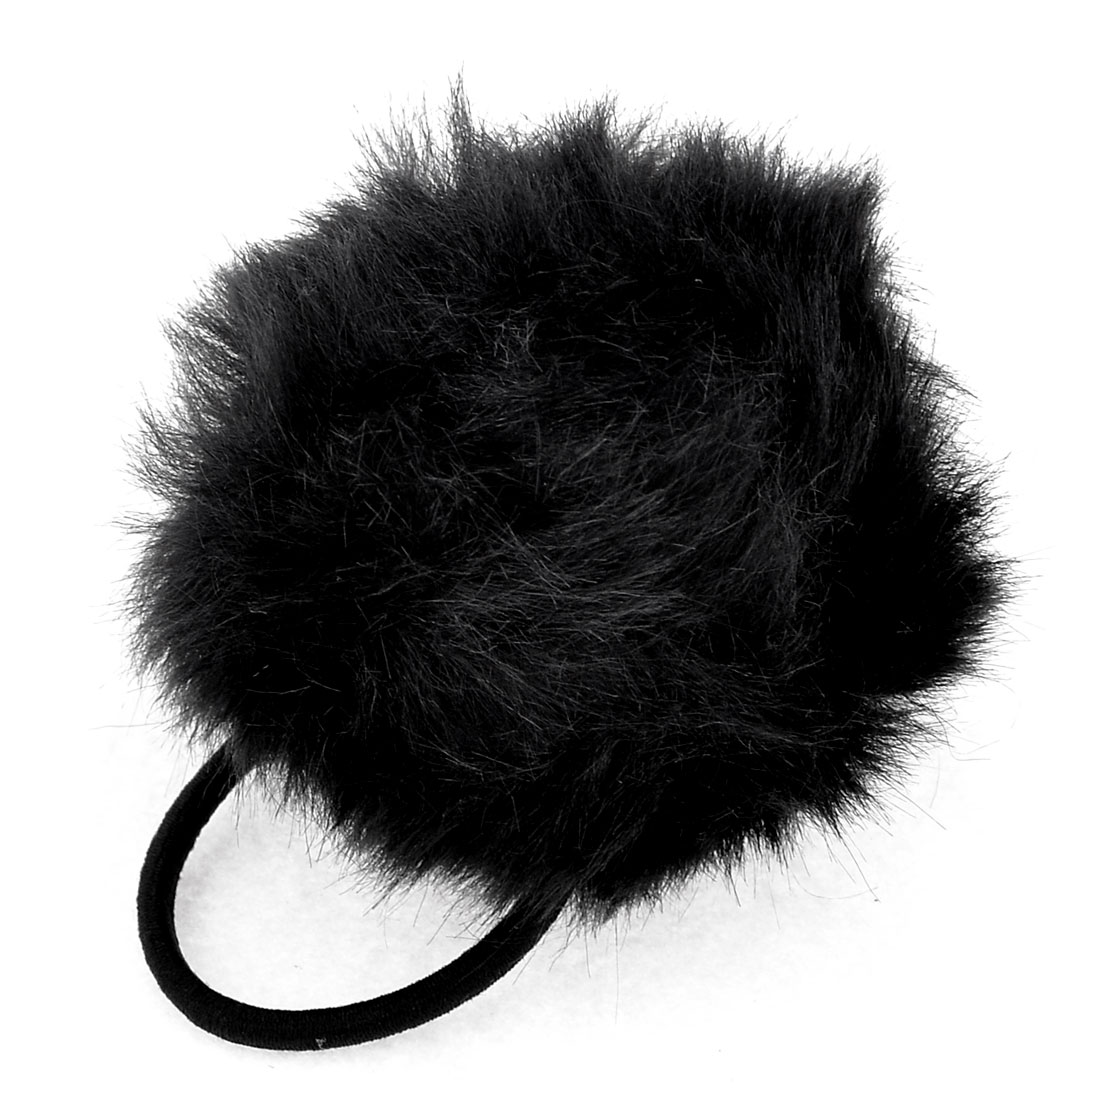 Black Stretchy Band Plush Ball Detail Hair Tie Ponytail Holder for Lady